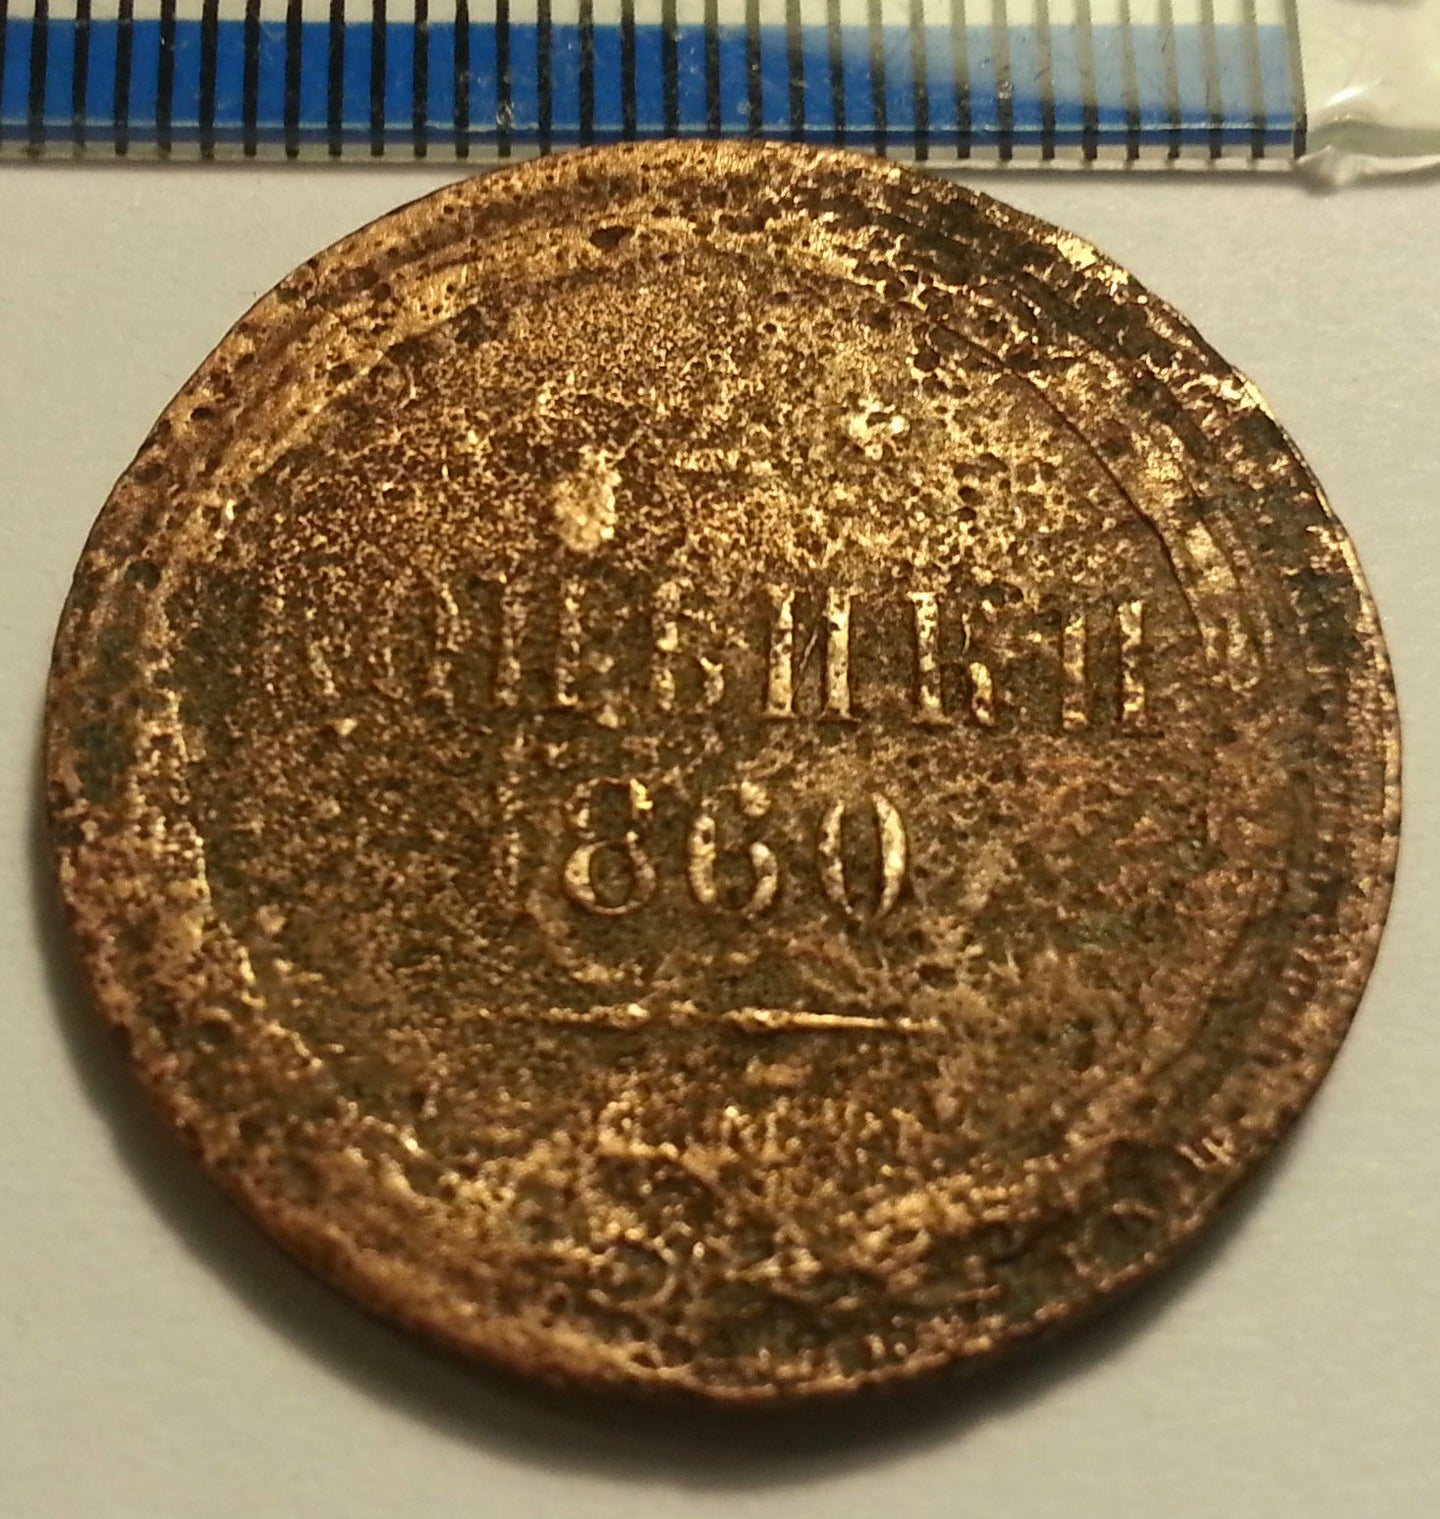 Antique 1860 coin 2 kopeks Emperor Alexander II of Russian Empire 19thC